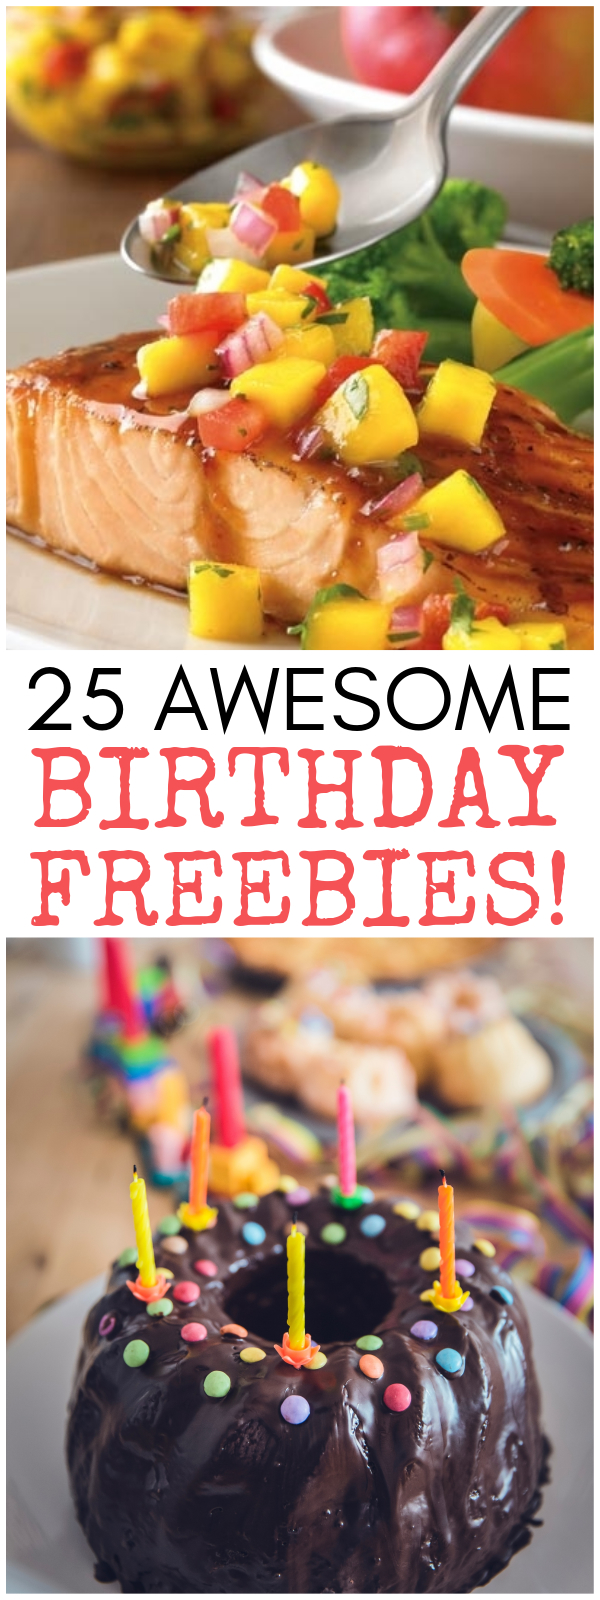 Free Birthday Stuff - Get 25 Free Birthday Meals, Desserts, Drinks and More!